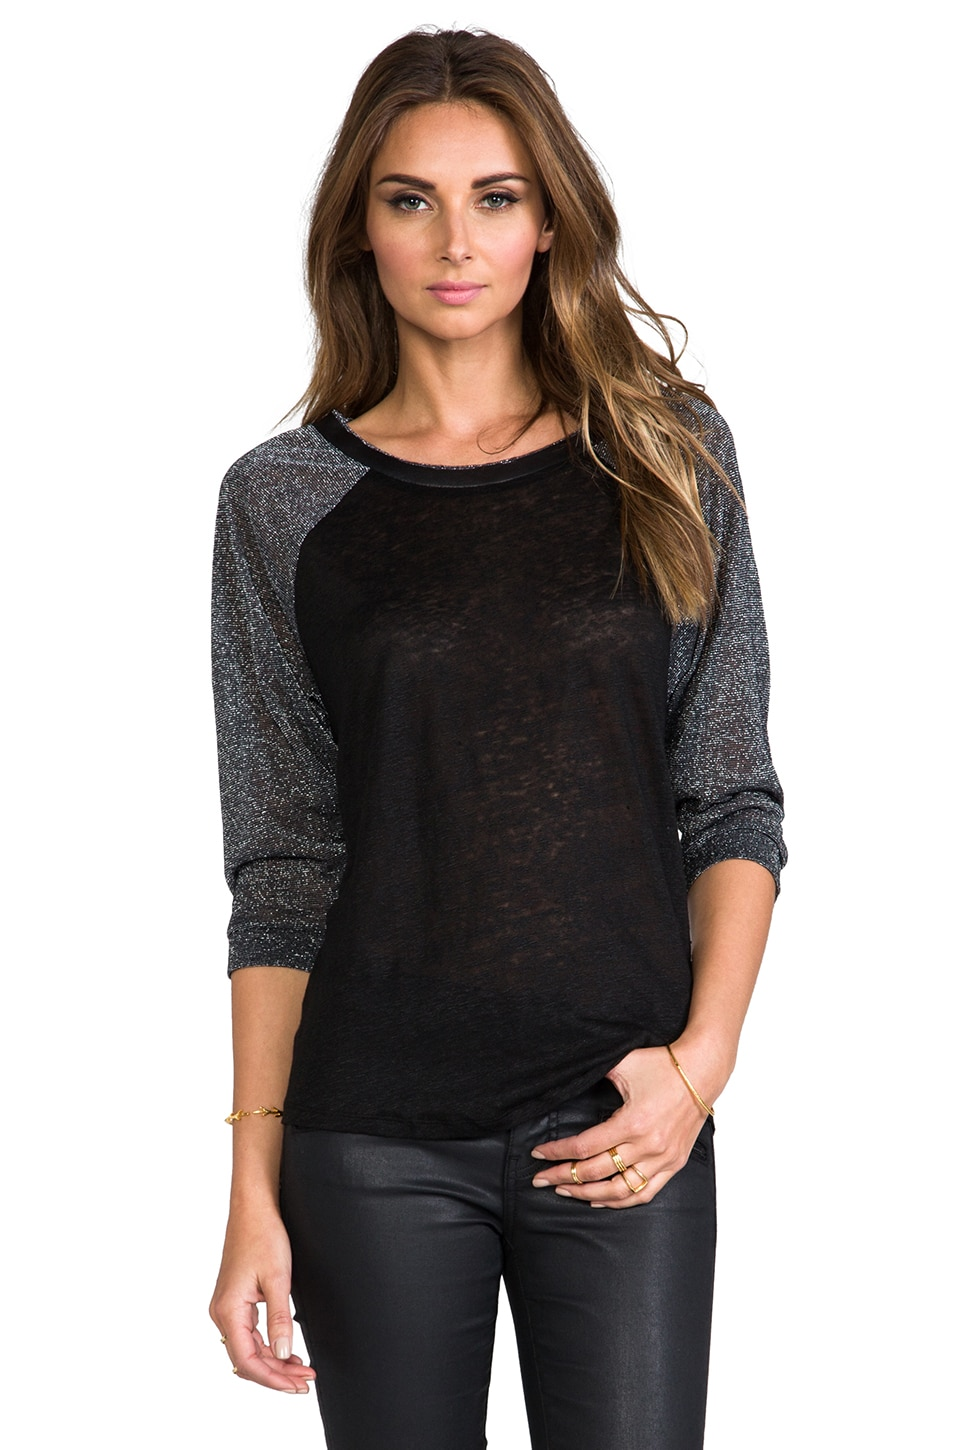 TOWNSEN Light 3/4 Top in Black